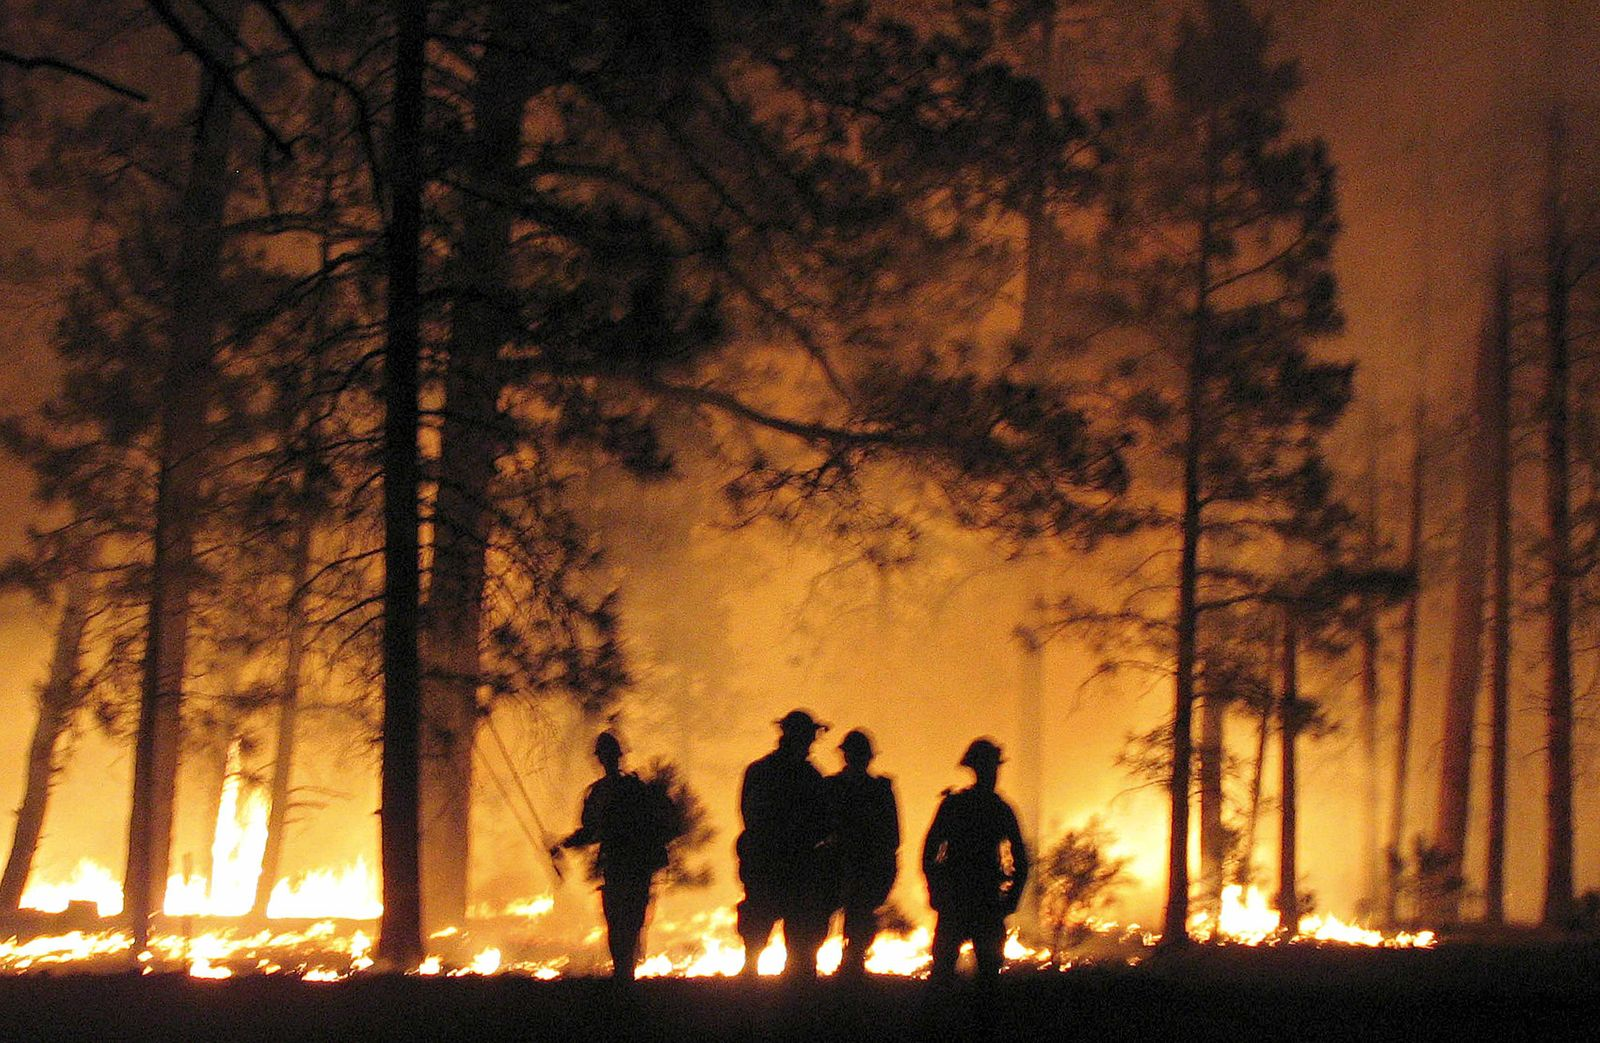 File photo of firefighters watching Warm Fire on North Rim near Grand Canyon National Park in Arizona